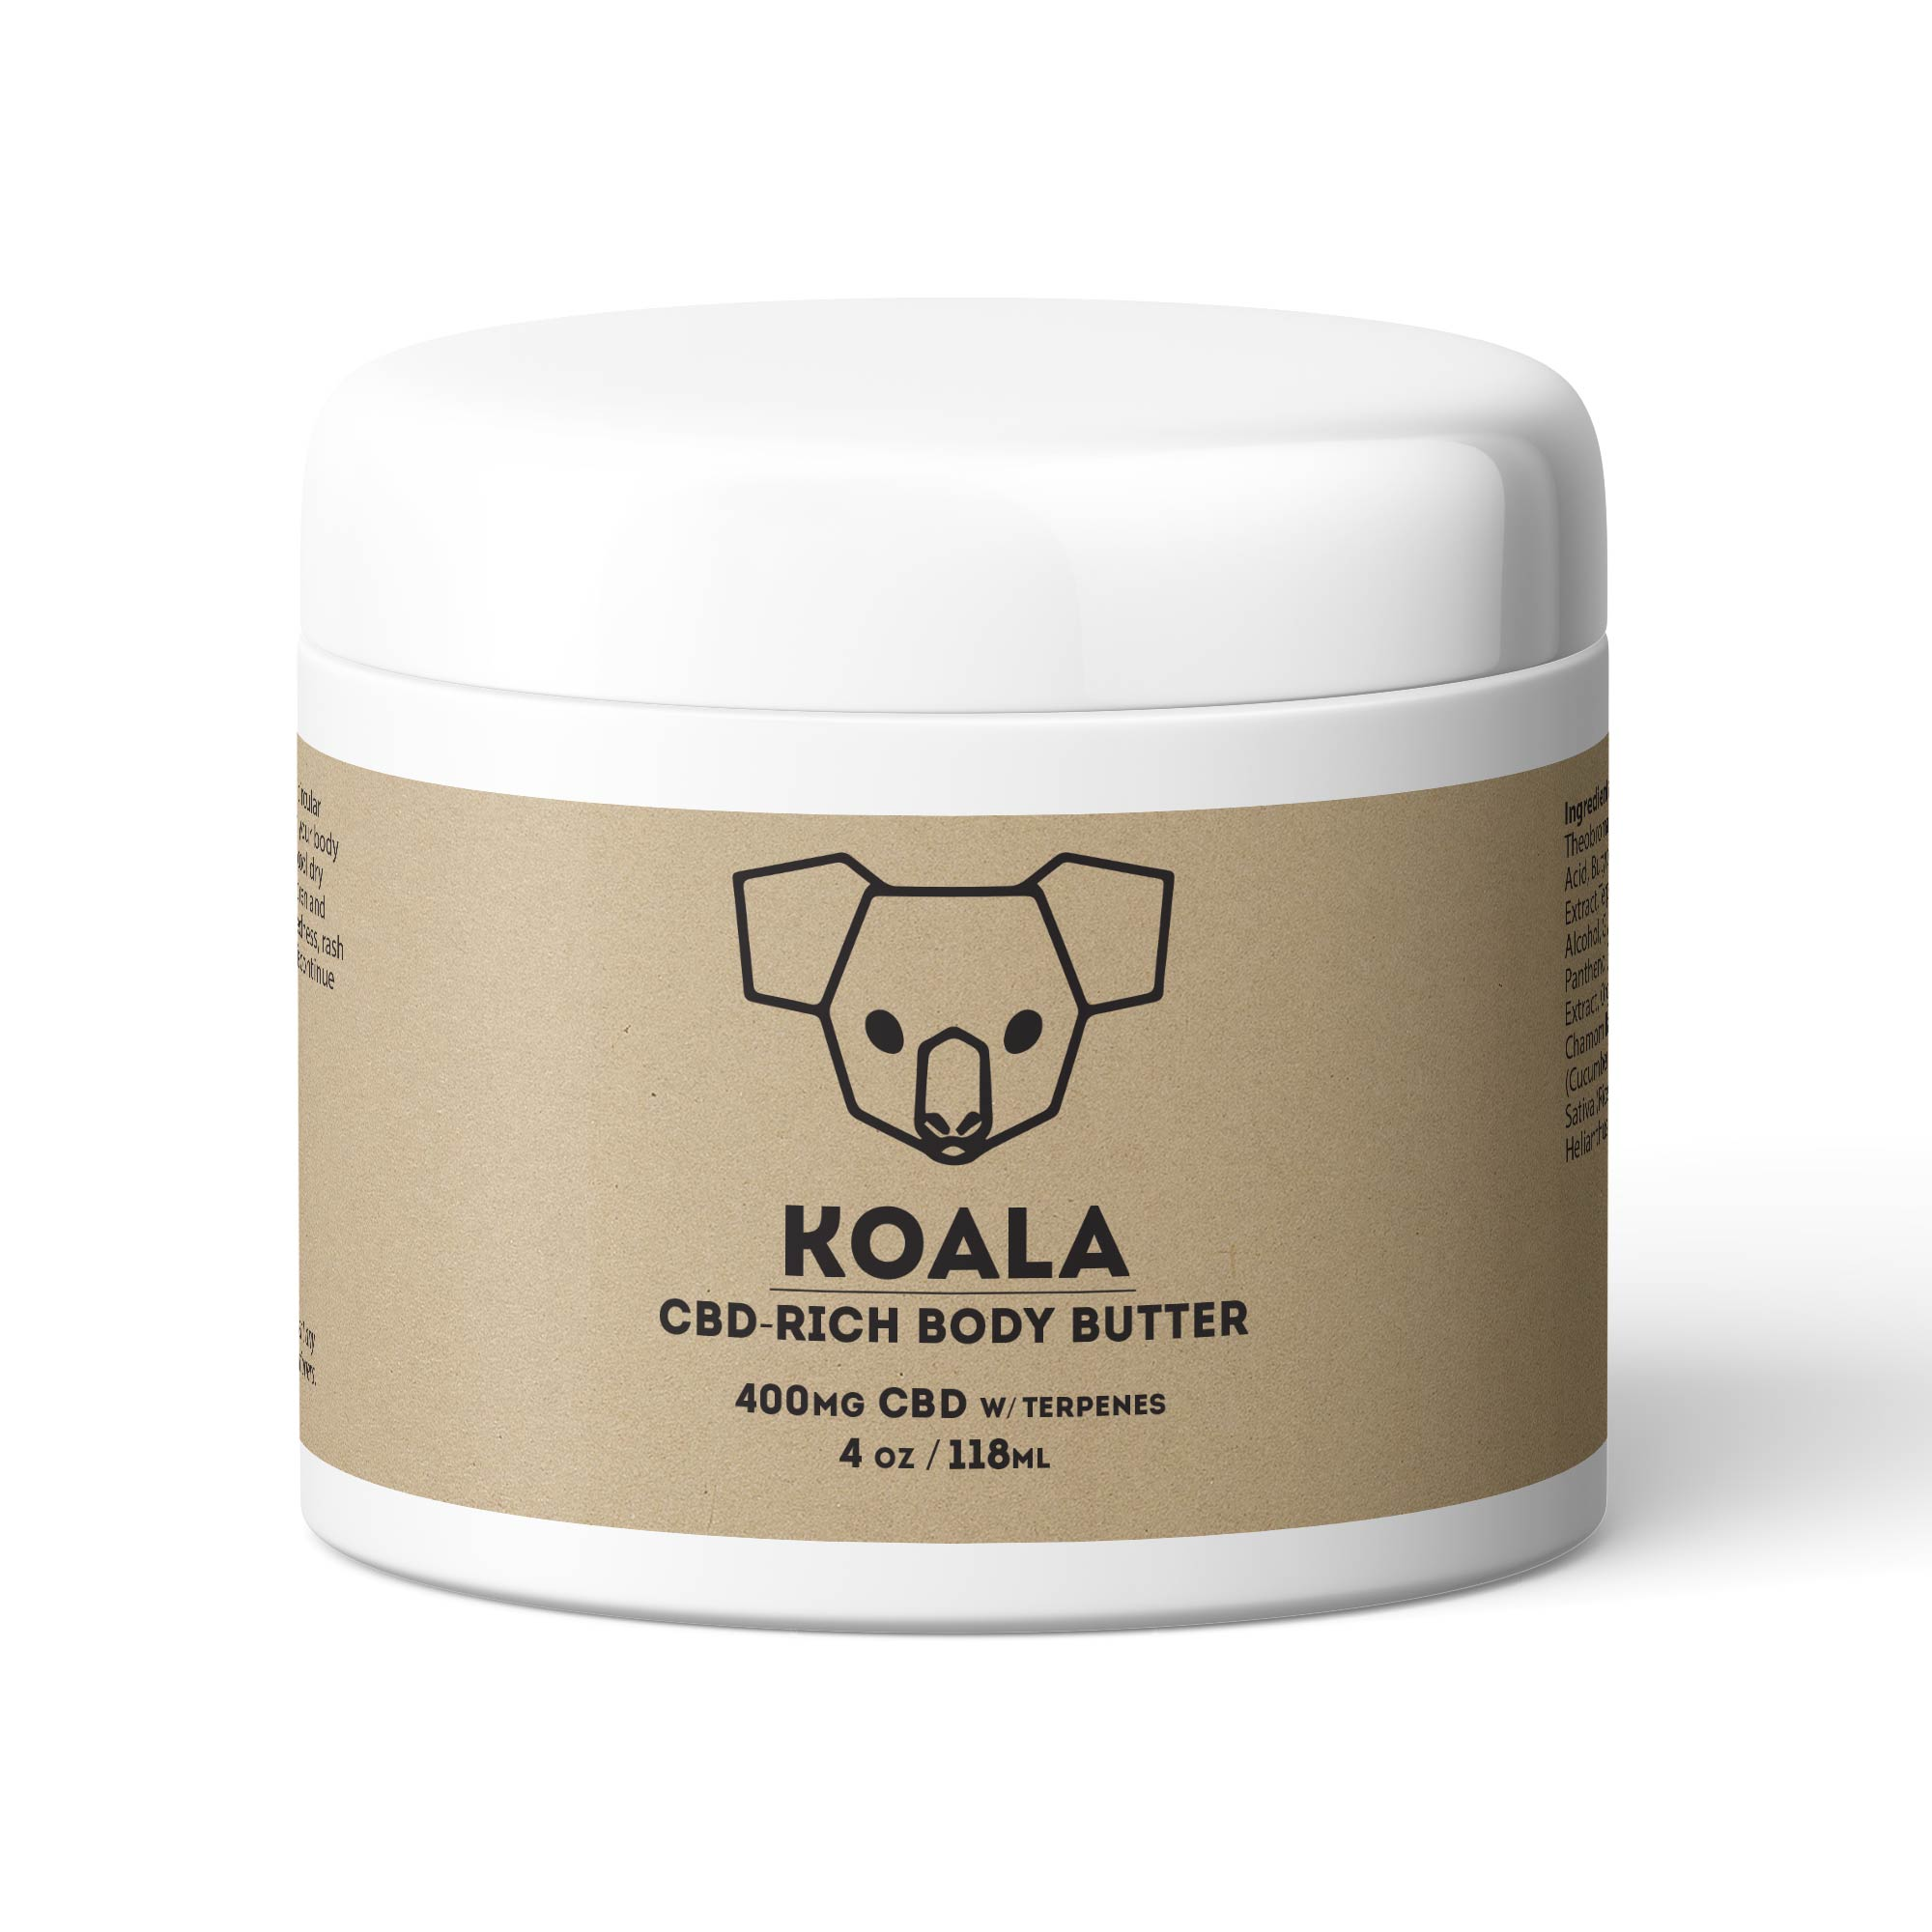 CBD-Rich Body Butter